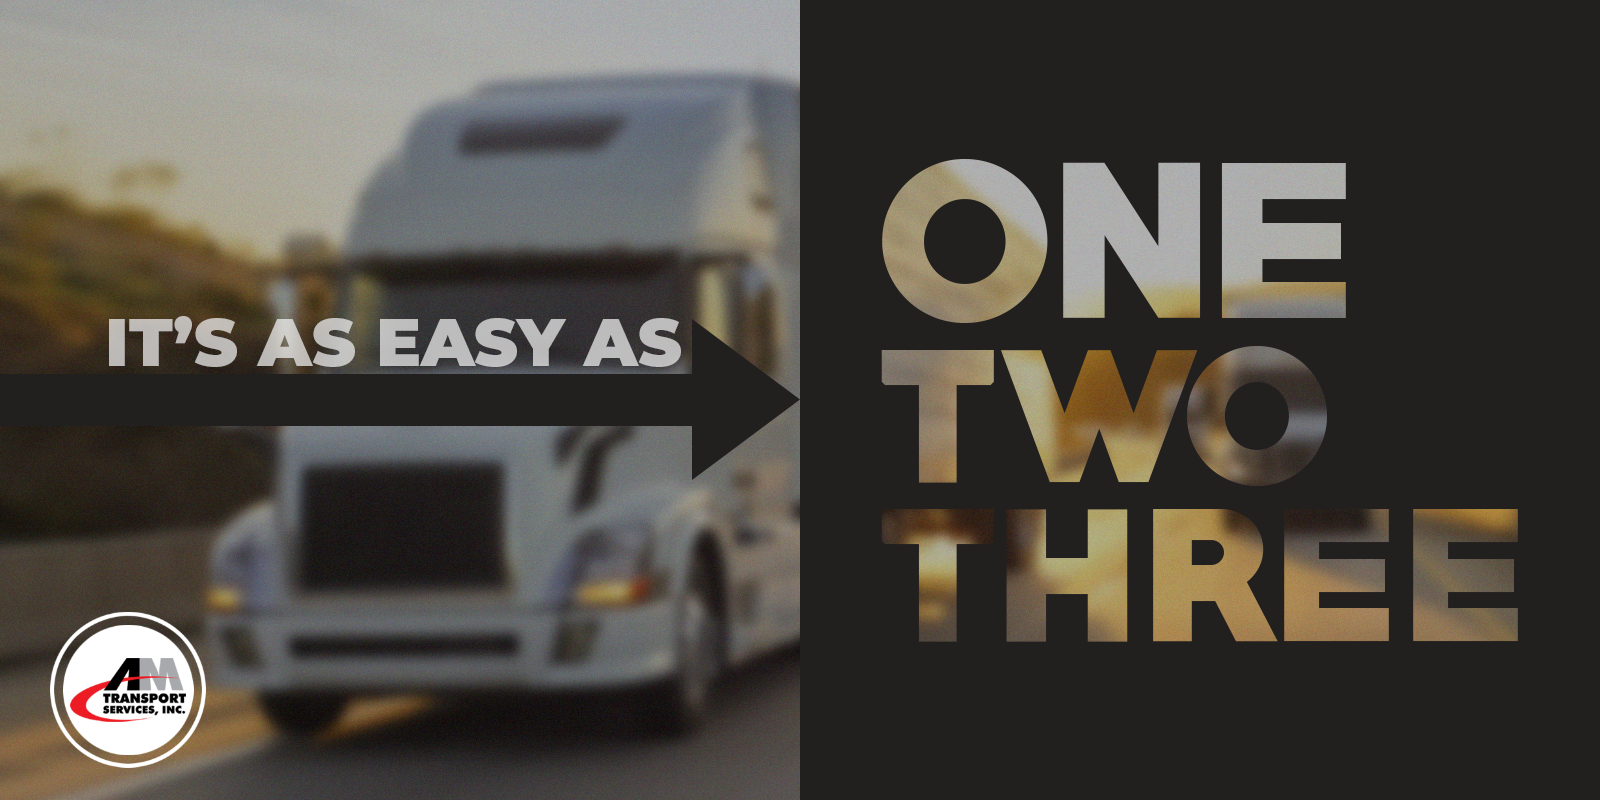 Better Shipping: It's as easy as 1, 2, 3.